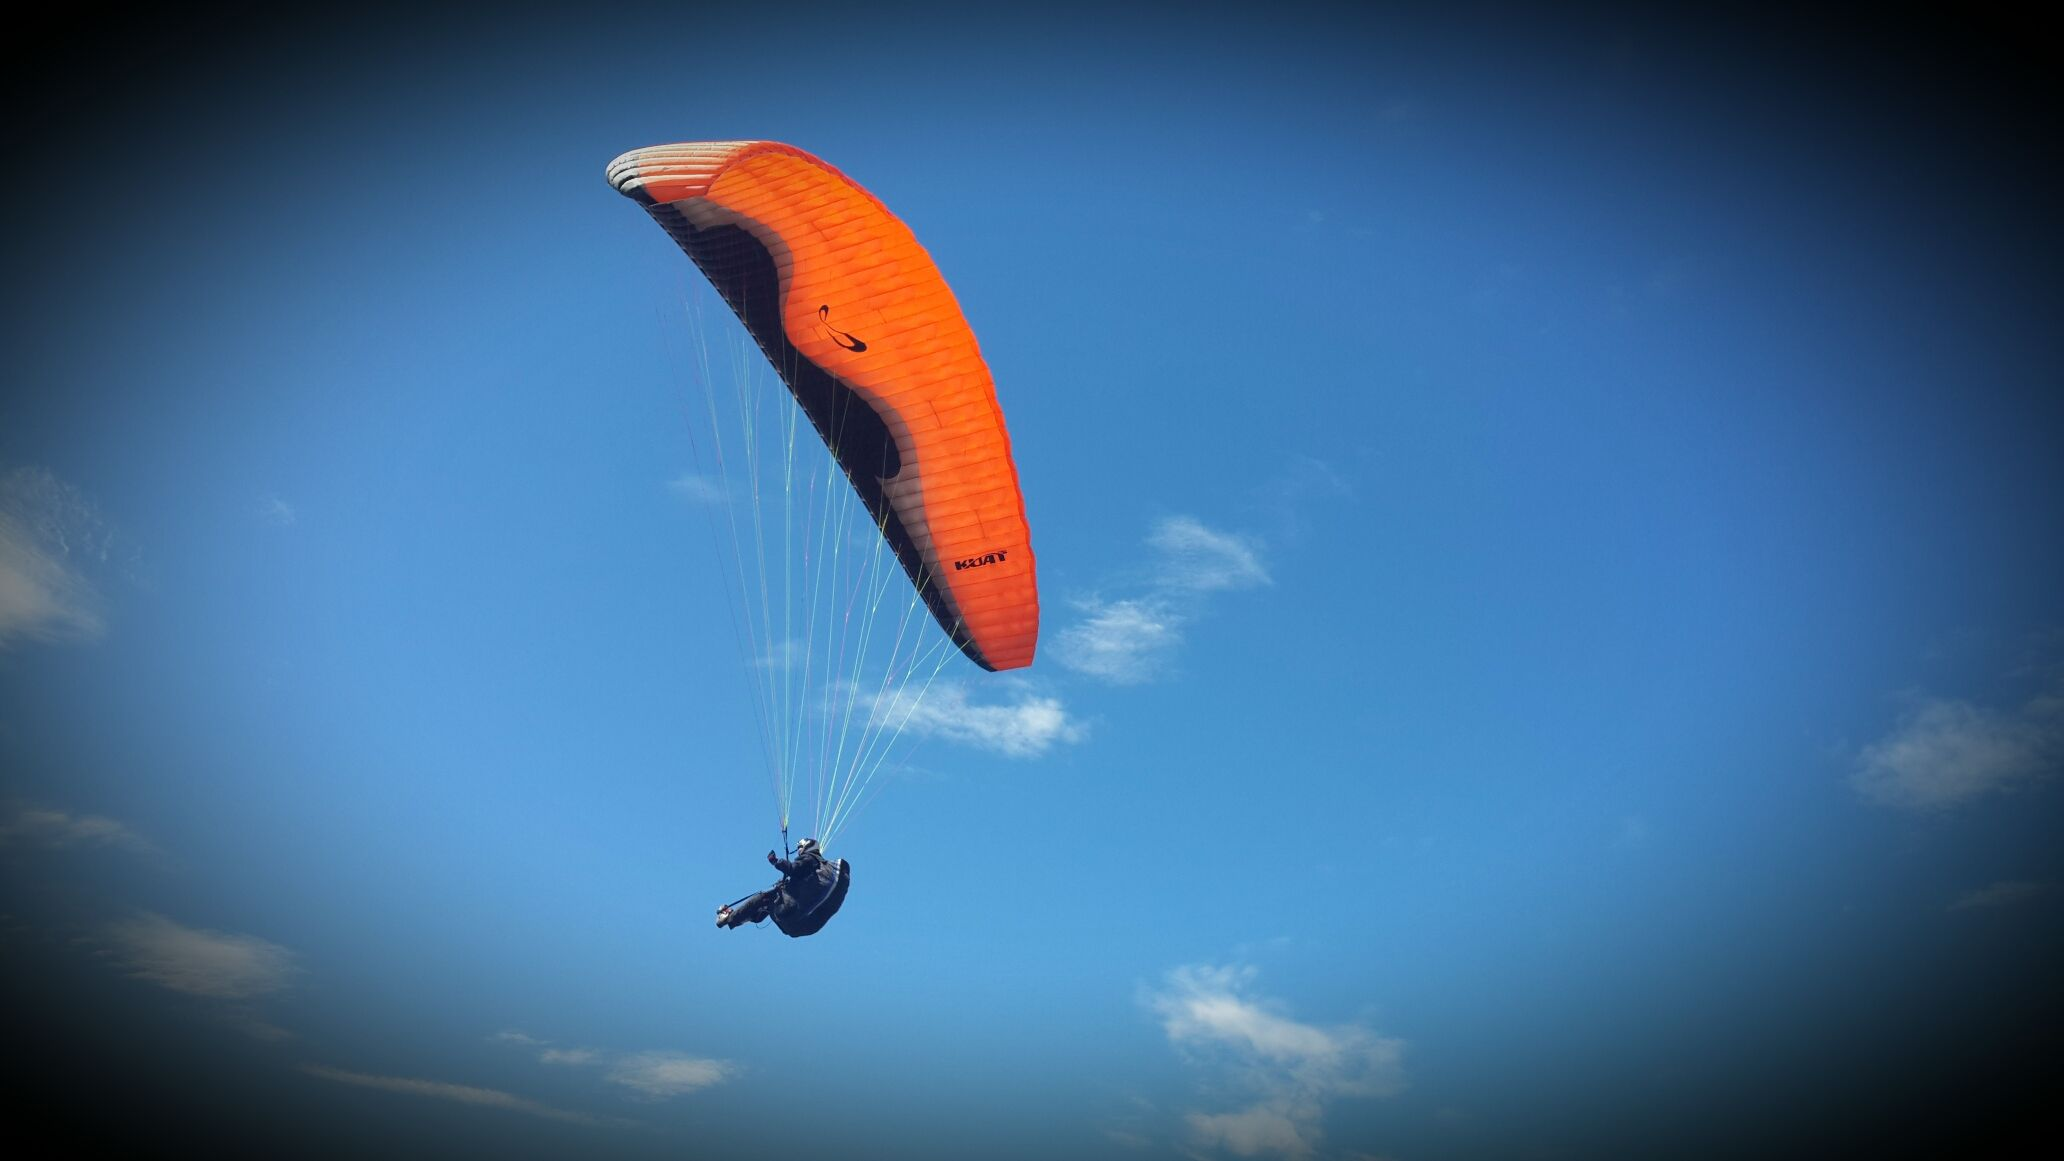 Paragliding, the most amazing sport in the world!